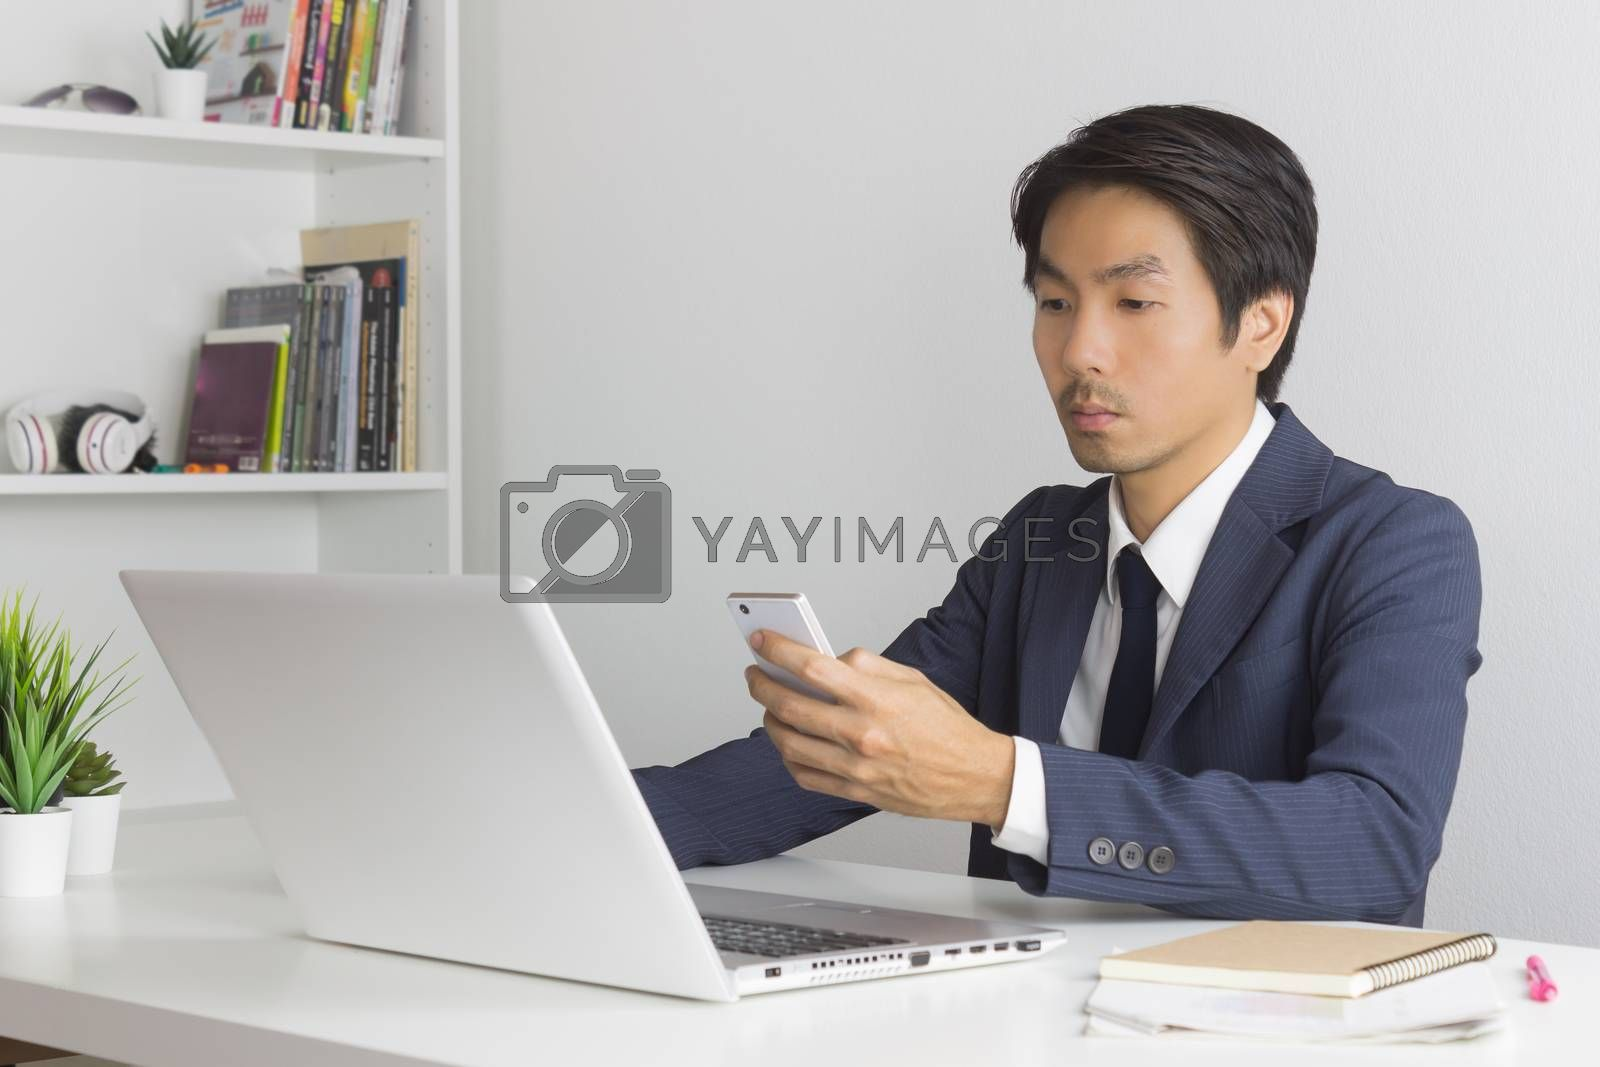 Asian Financial Advisor or Asian Consulting Businessman Contact with Customer by use Smartphone and Laptop in office. Asian Financial Advisor or Asian Consulting Businessman chat and send message with customer